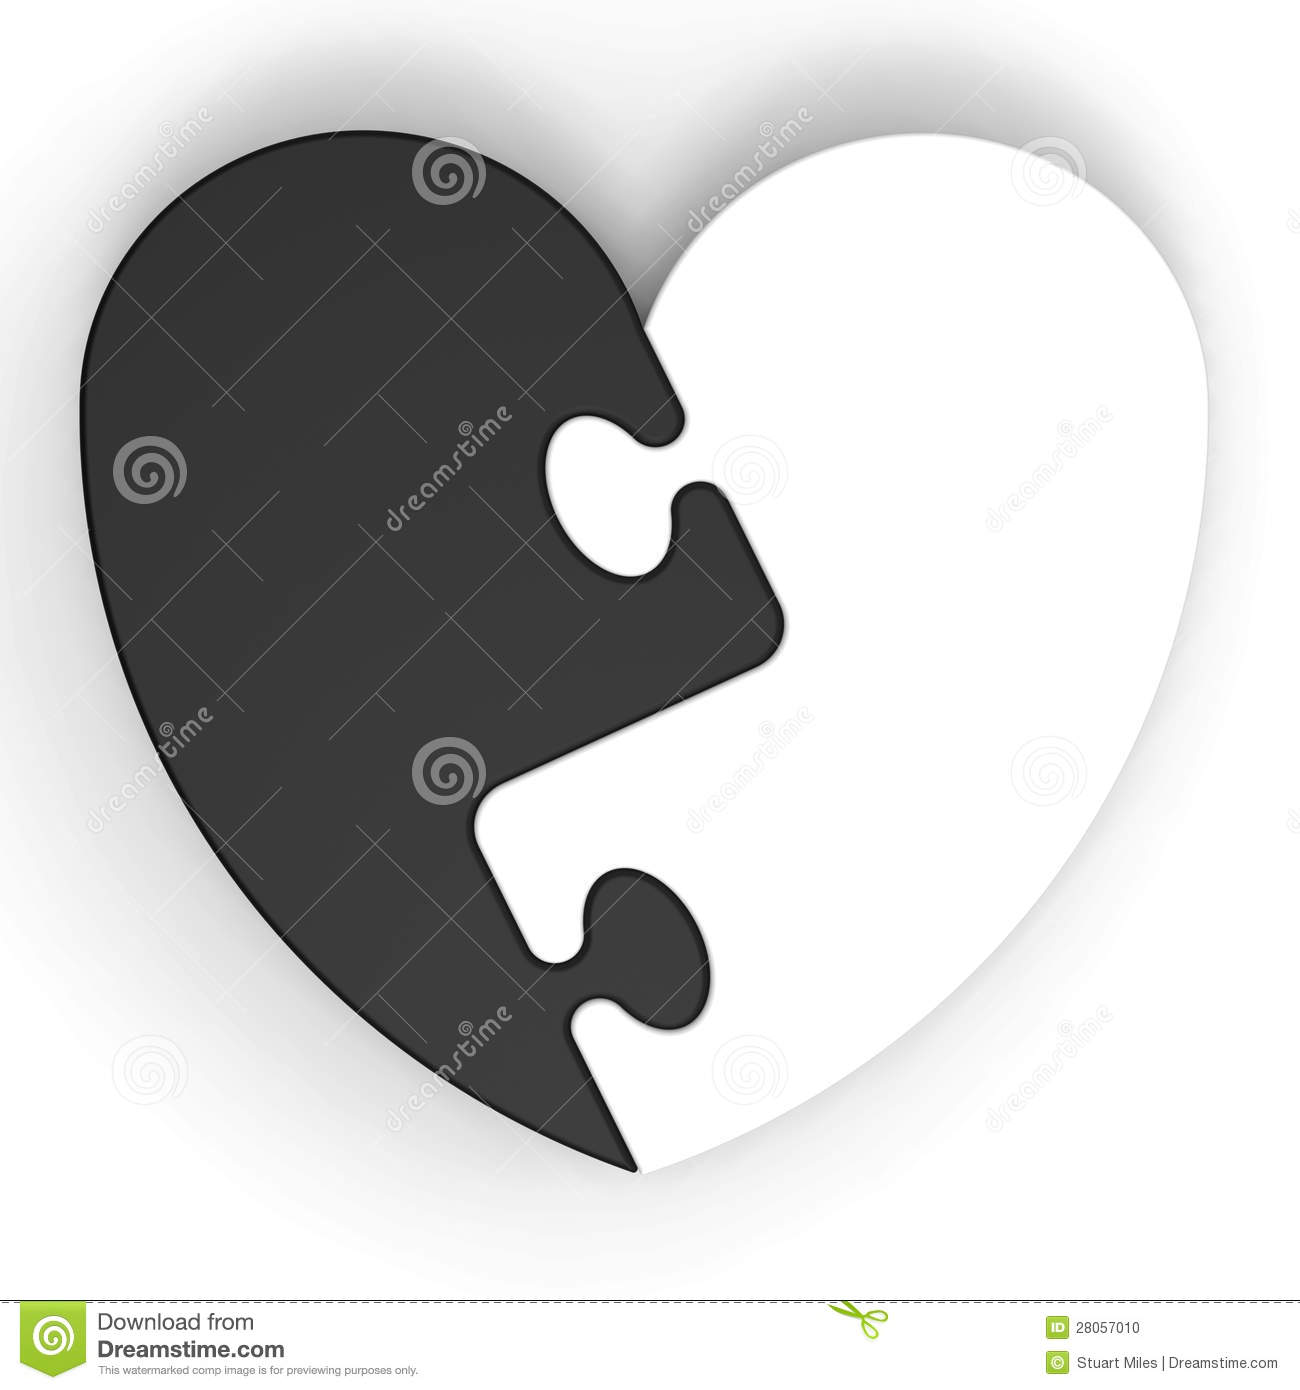 Two colored heart puzzle showing lost love